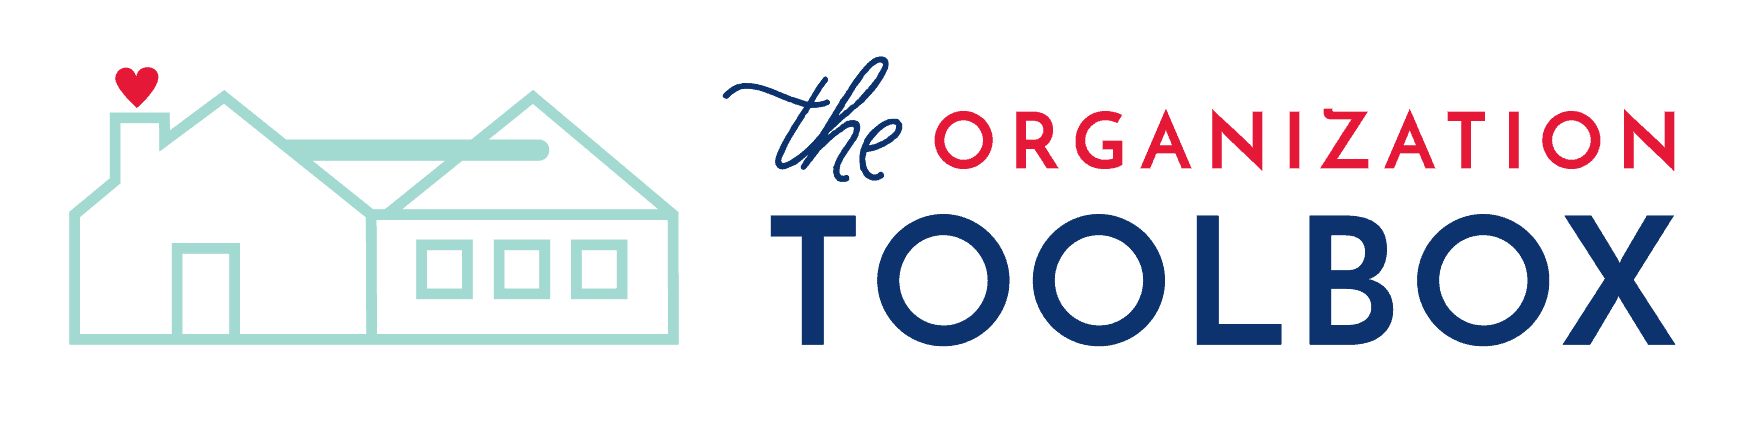 The Organization Toolbox | A Collection of Pretty Printables to Help You Organize Your Life and Home